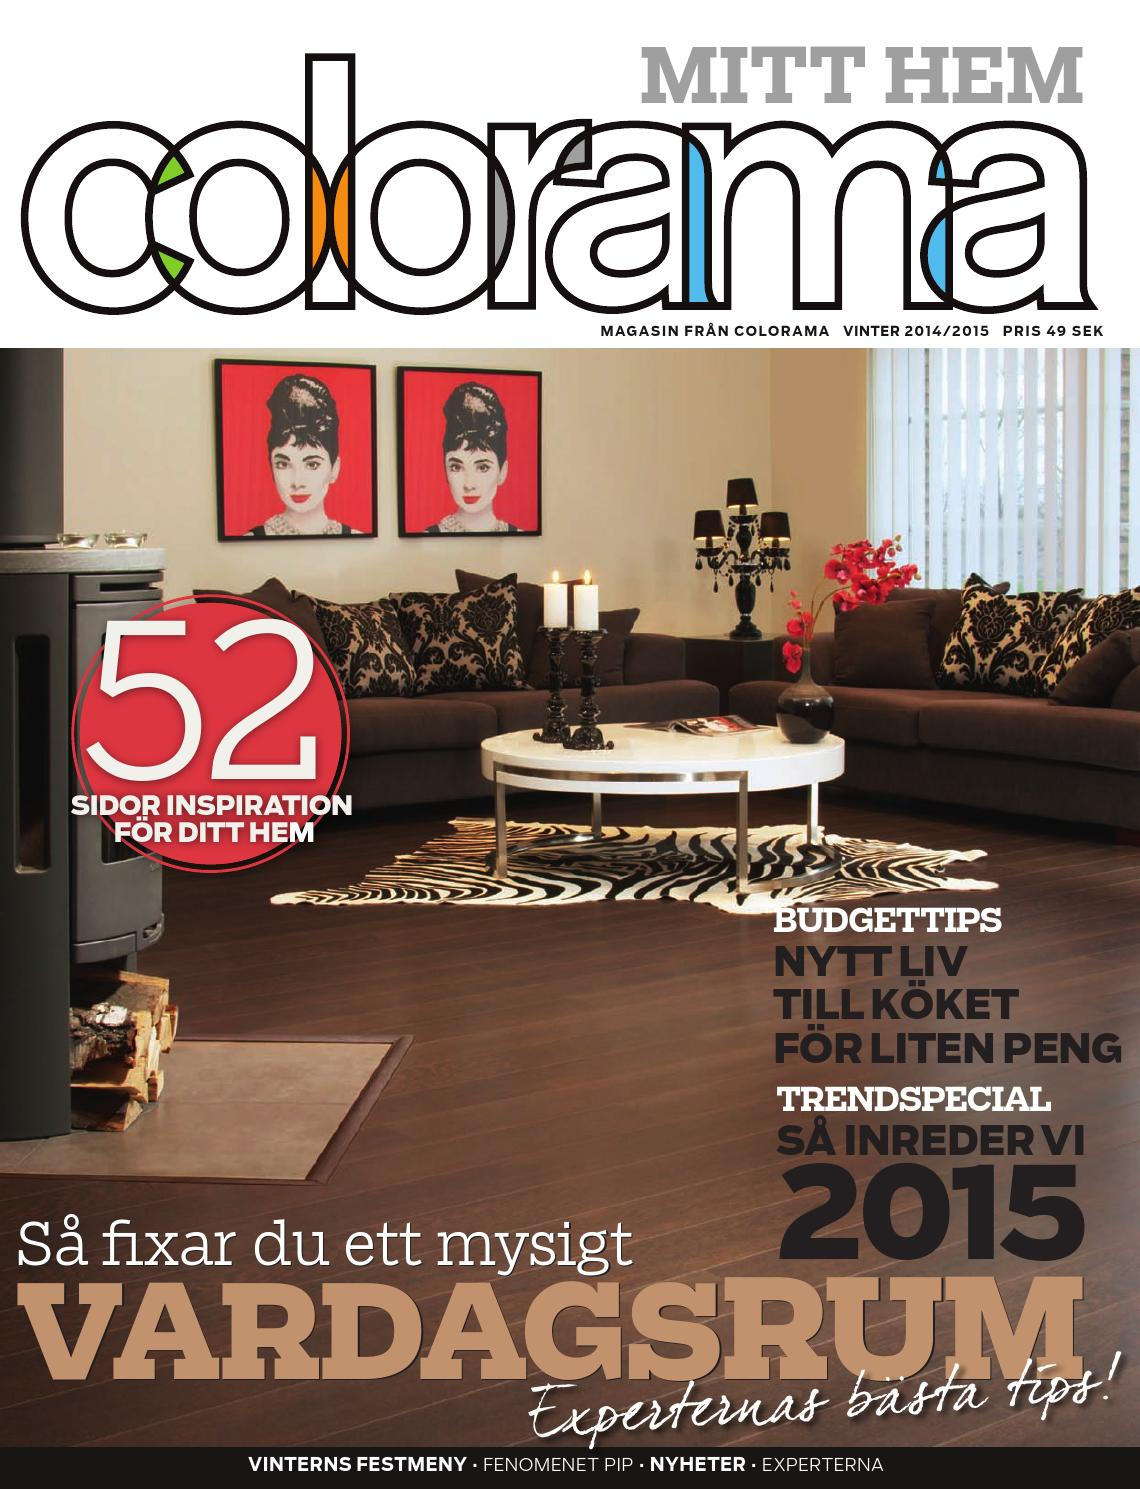 Colorama Mitt hem, 2014-5 vinter by Colorama - issuu